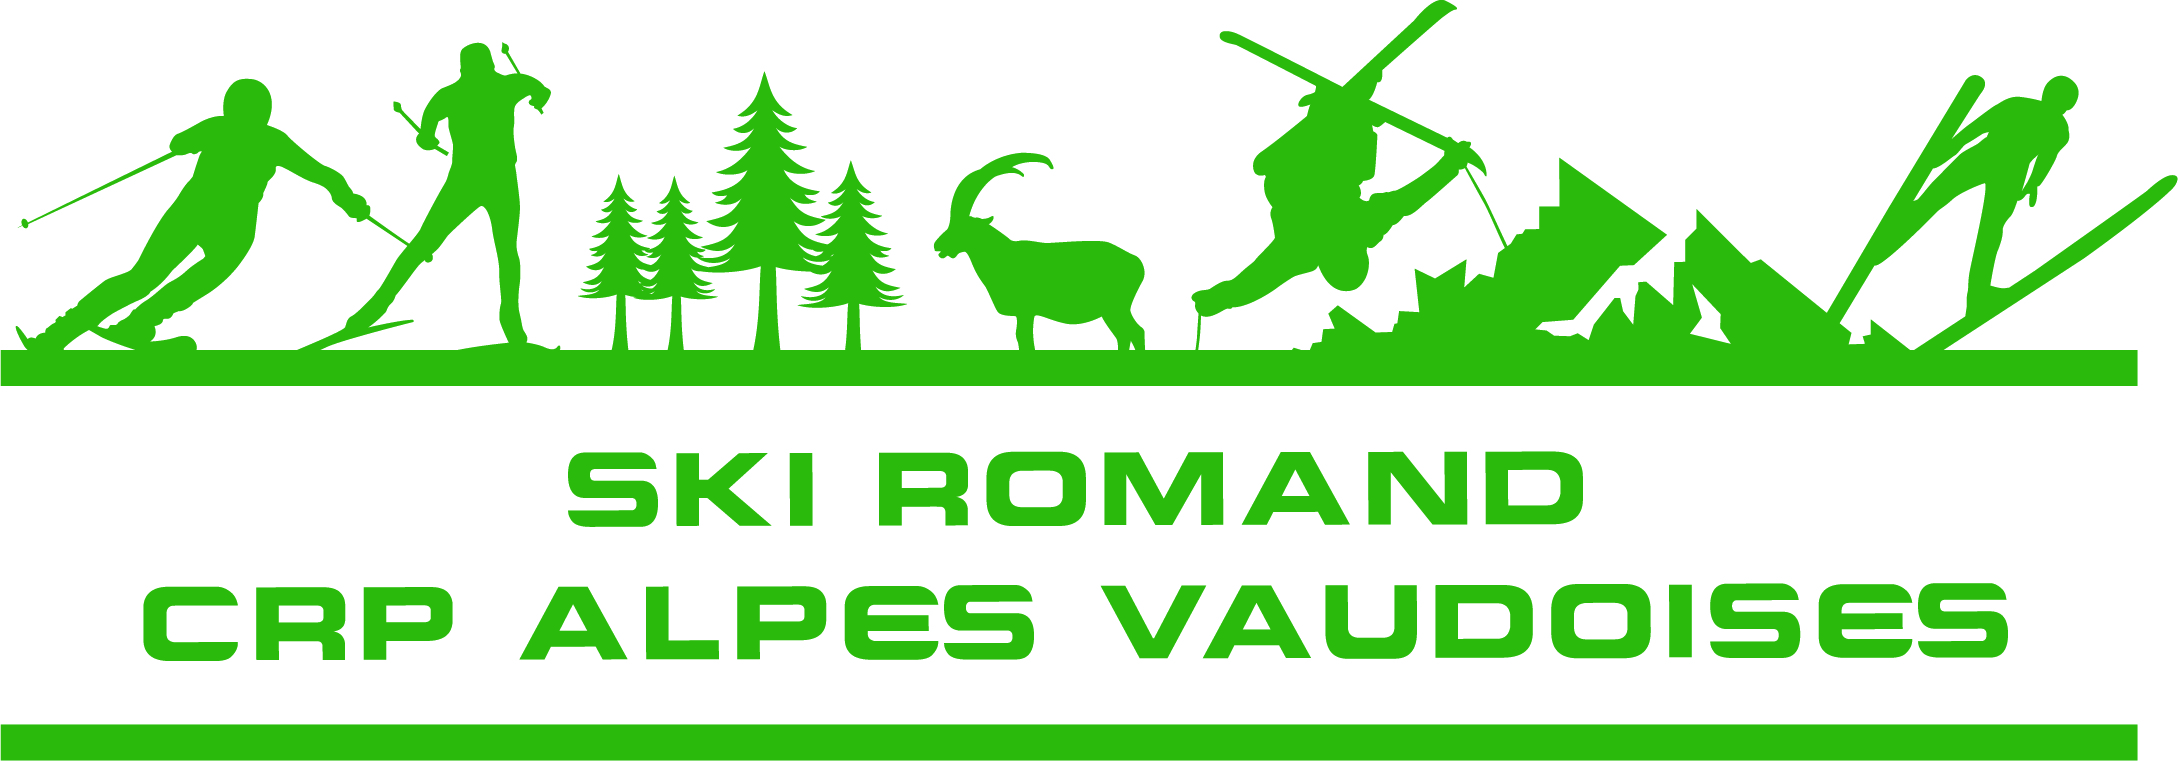 files/images/Logo_CRP_alpes_vaudoises.jpg